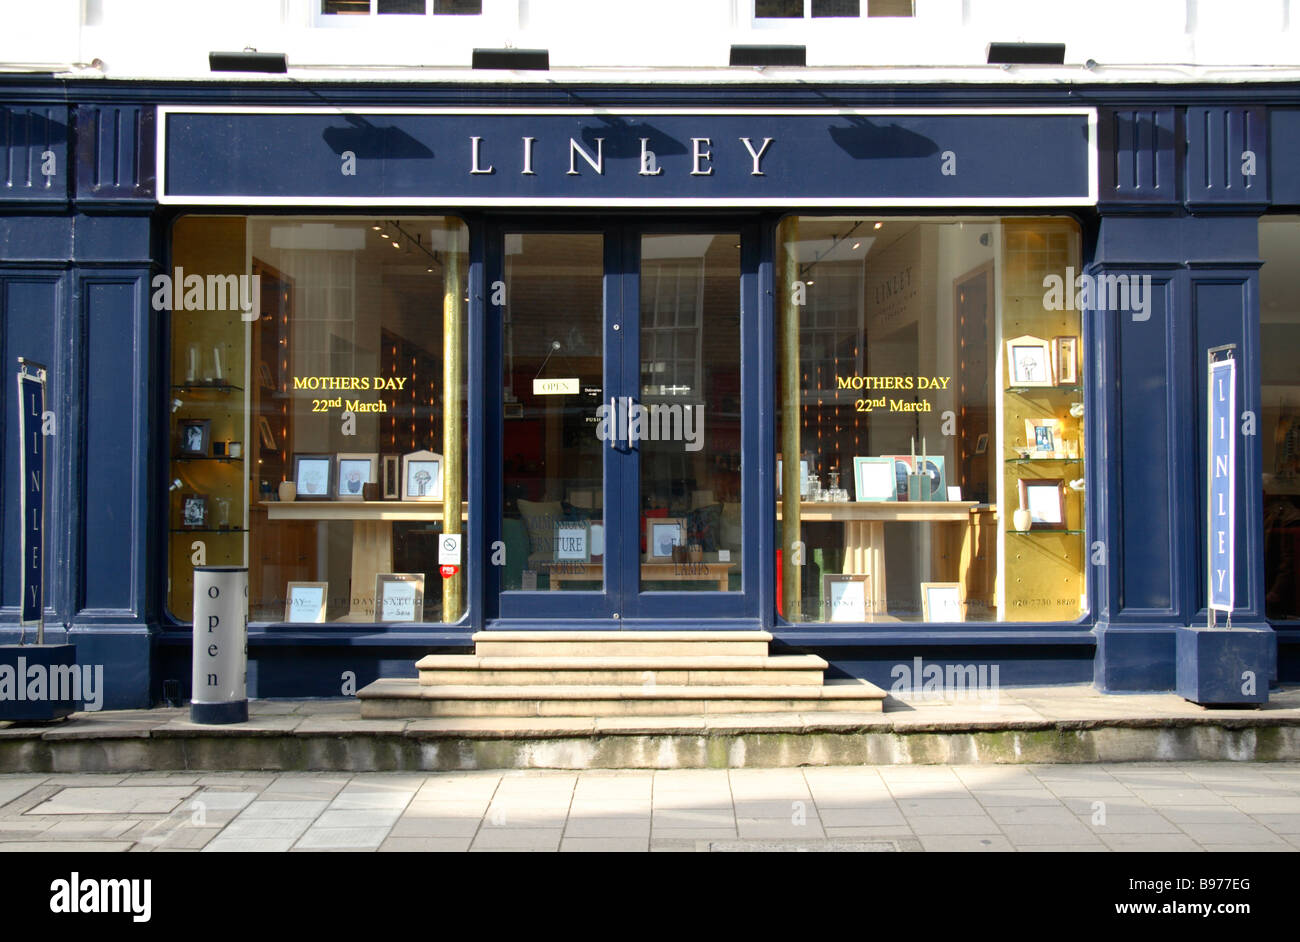 The Shop Front Of David Linley Furniture Store Belgravia London March 2009